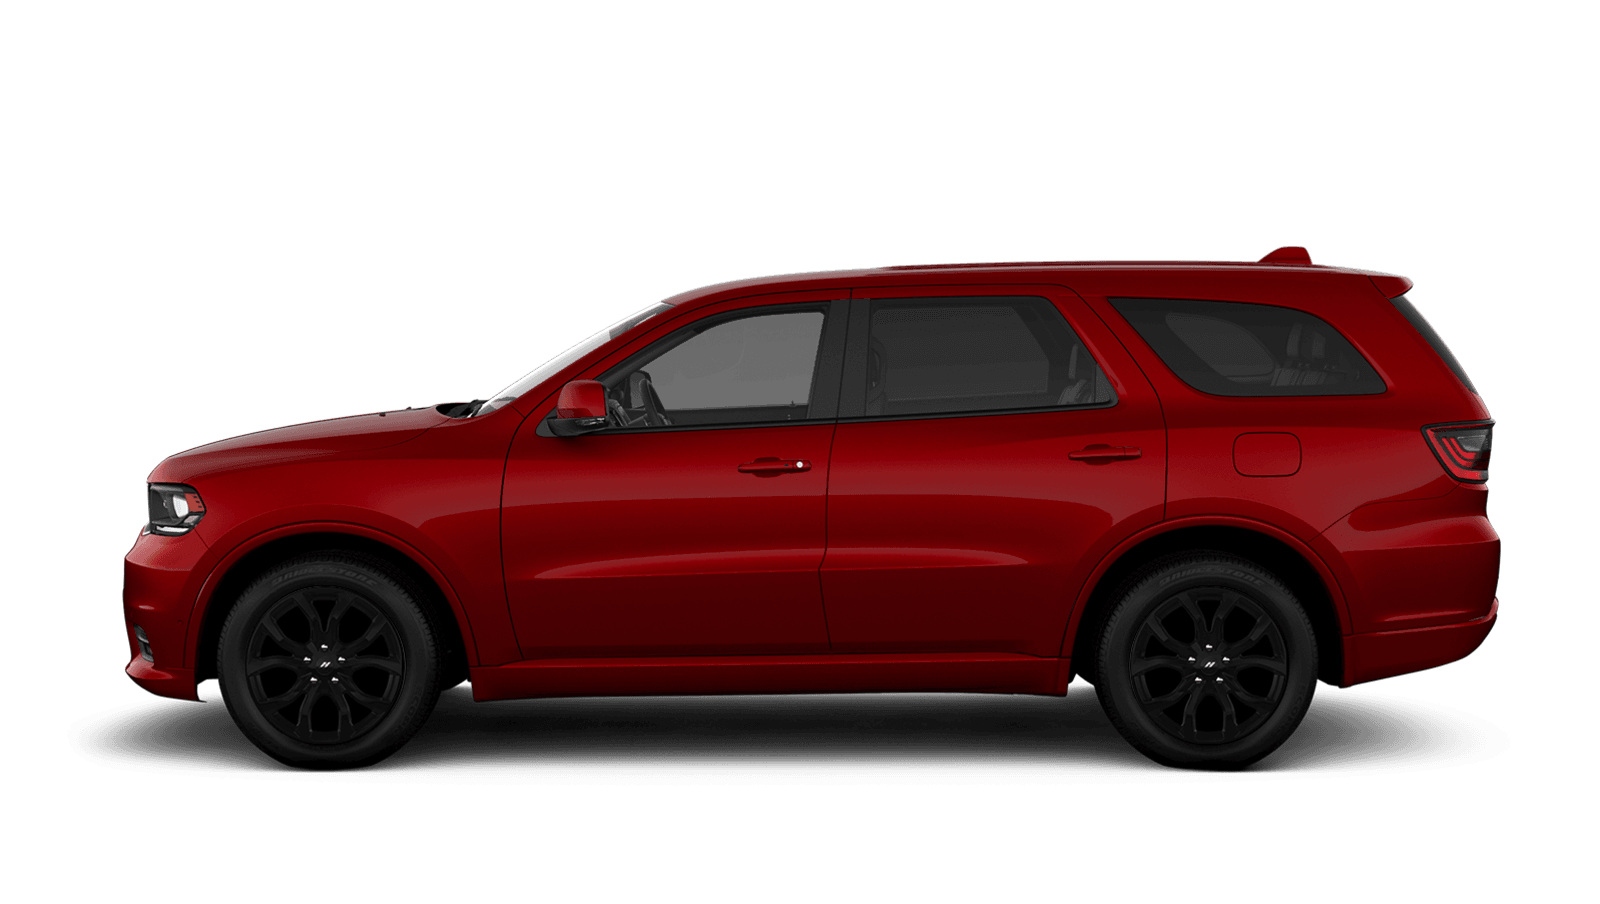 2019 Dodge Durango sideview with 20-inch gloss black aluminum wheels